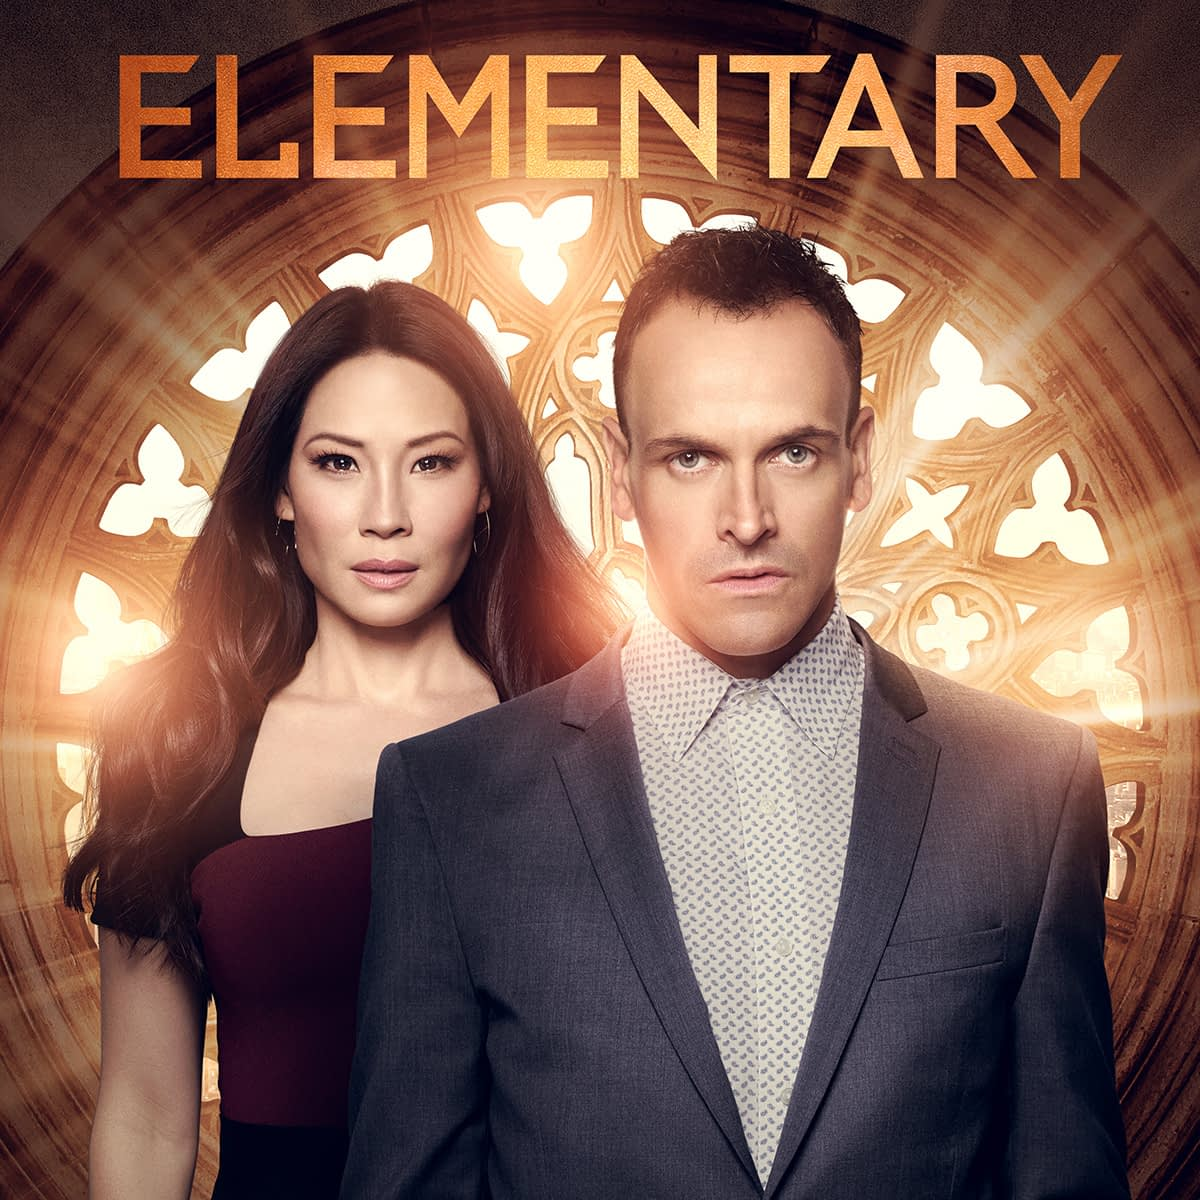 """Elementary"" Finale Brings the Modern Sherlock Holmes Era to an End"